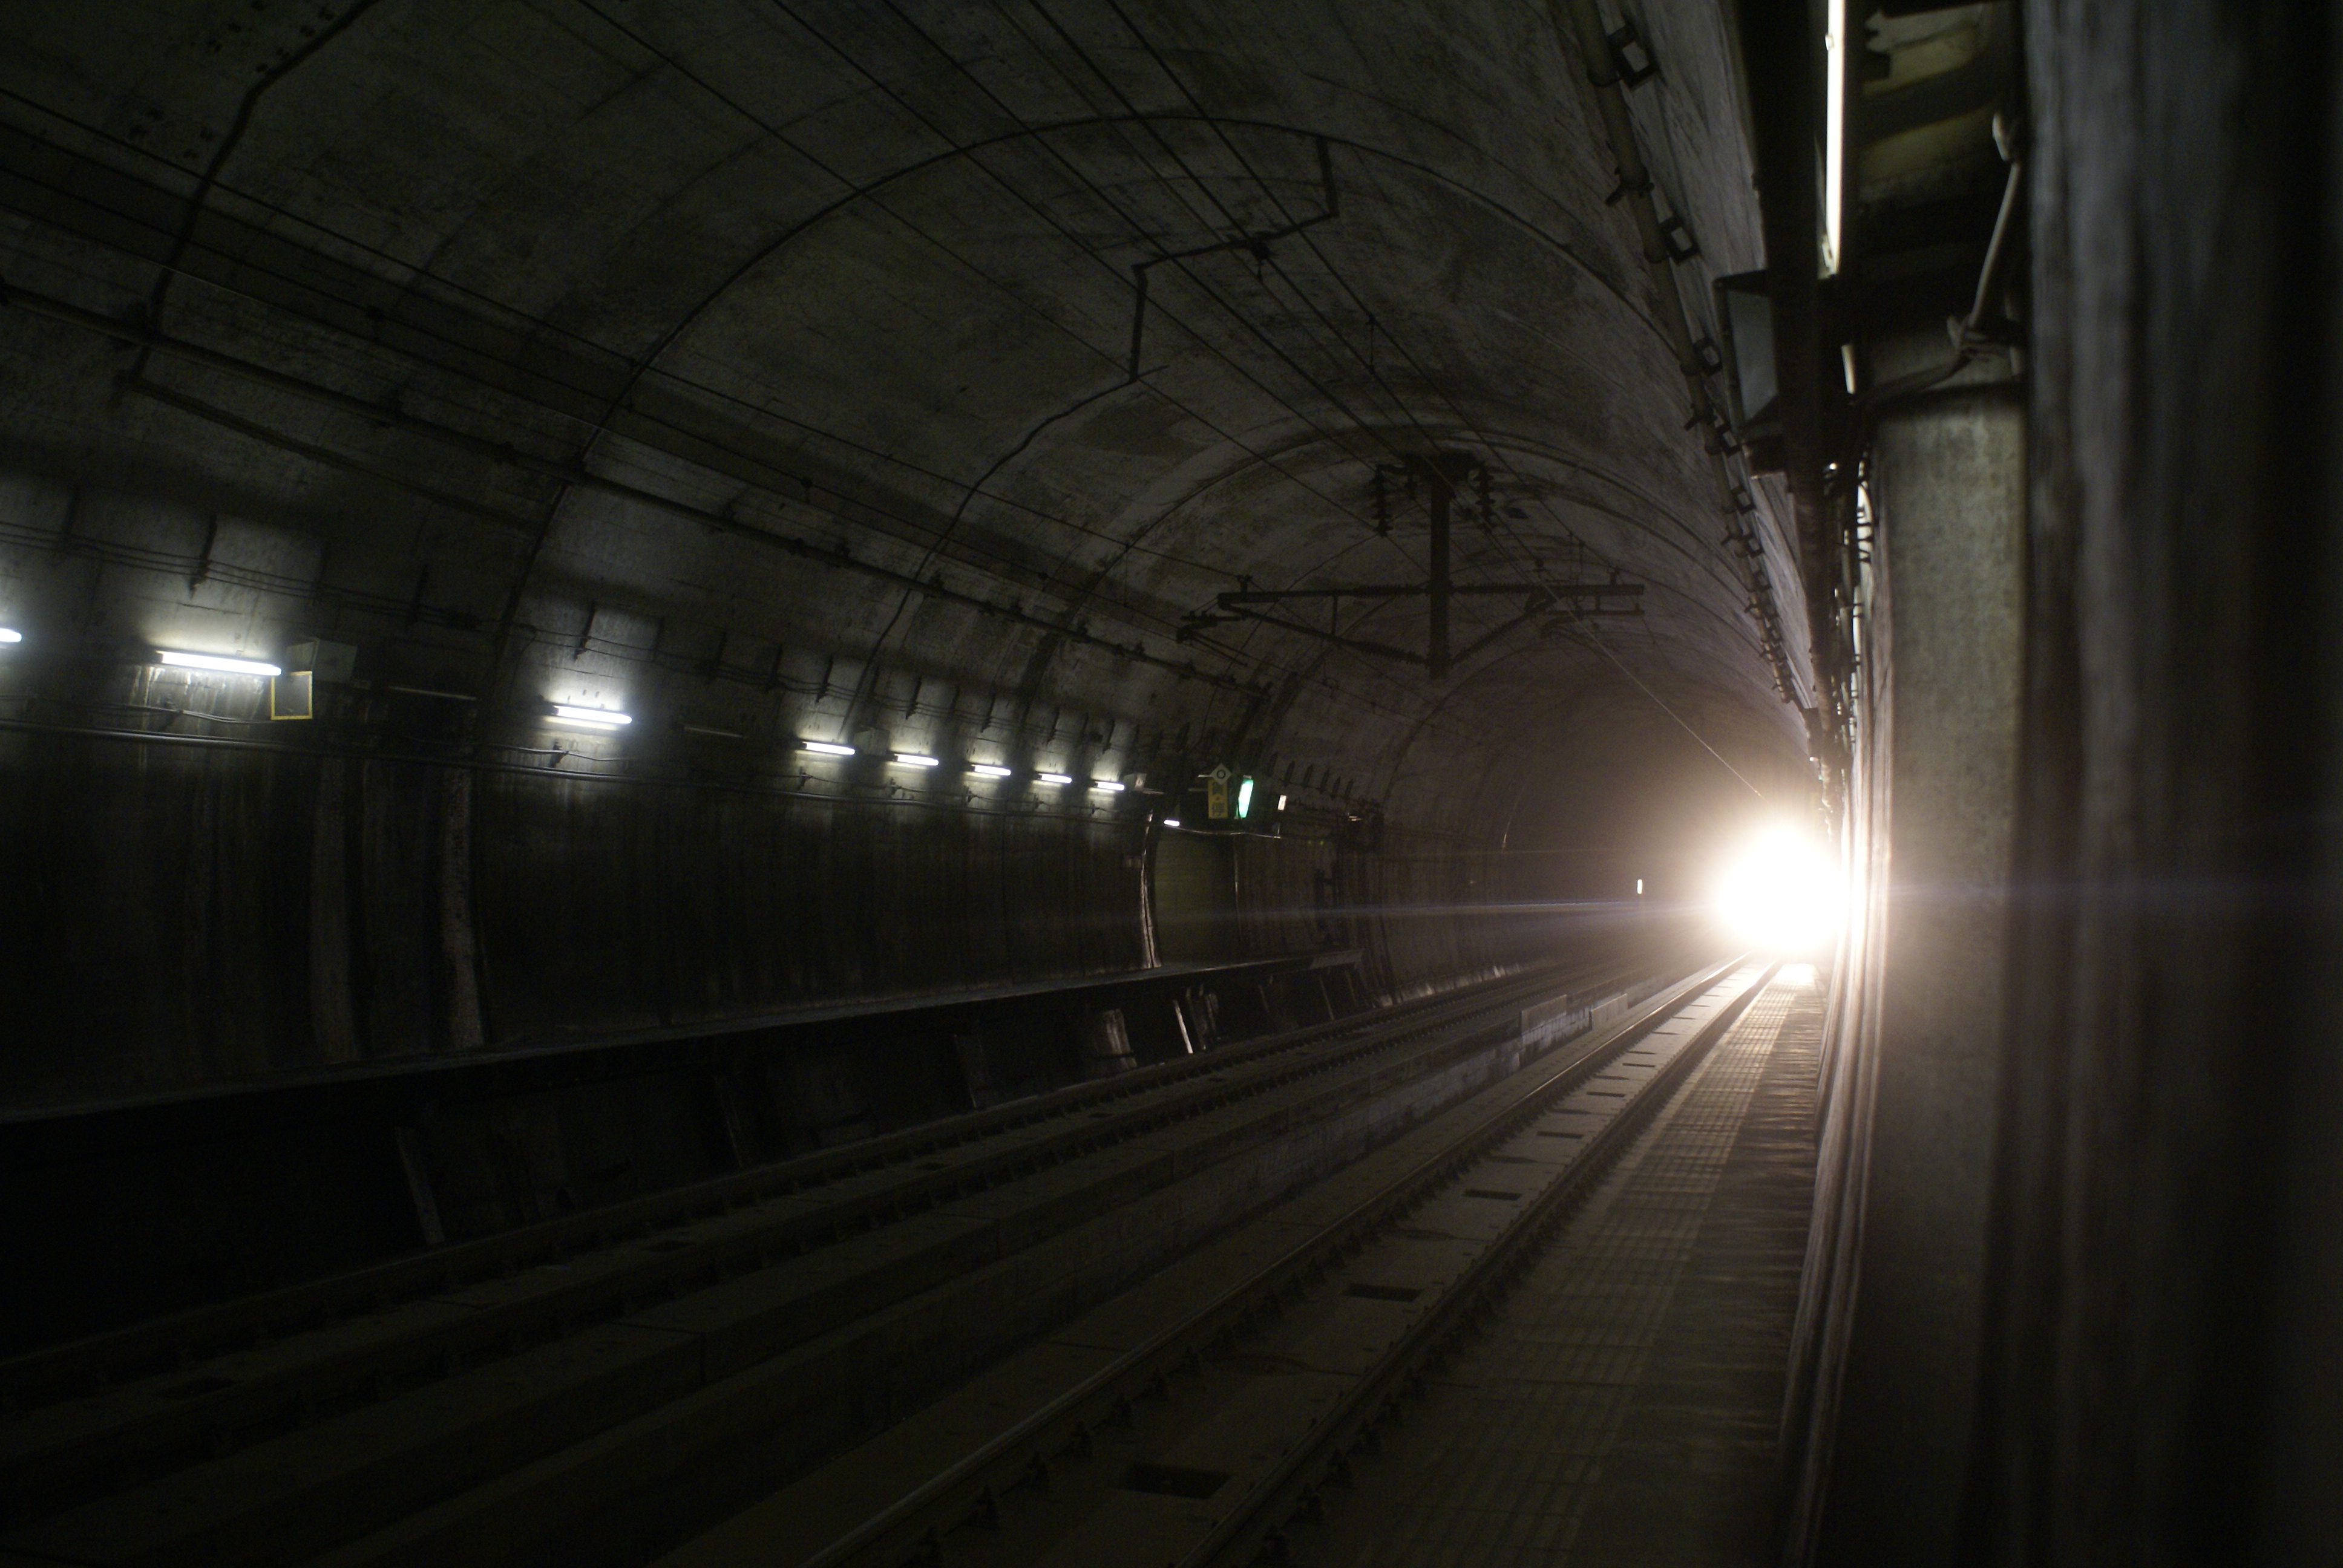 File:Inside seikan tunnel.JPG - Wikimedia Commons